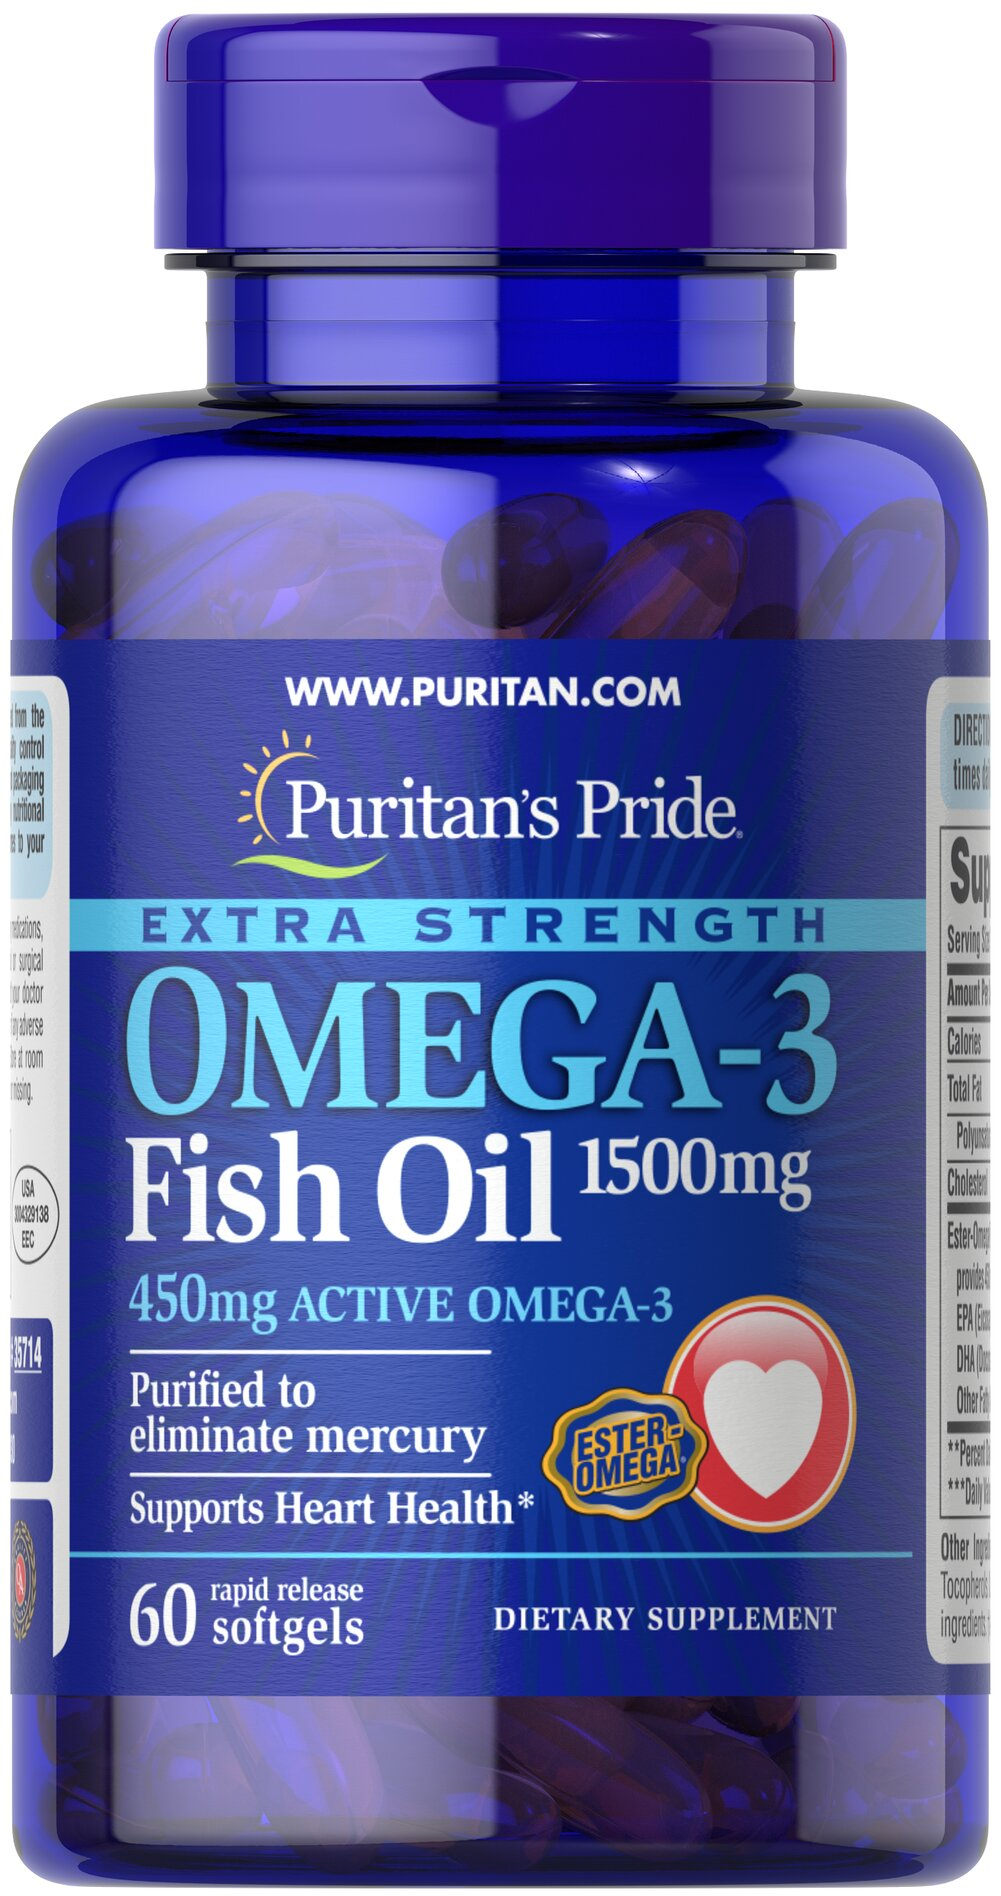 Extra Strength Omega-3 Fish Oil 1500 mg (450 mg Active Omega-3) <p><strong>Purified to Eliminate Mercury</strong></p><p>Super Potency 1500 mg  in one softgel!</p><p>Contains 450 mg of active Omega-3 per softgel.</p><p>Features fish oil in rapid-release softgels with enhanced potency and superior absorption.**</p> 60 Softgels 1500 mg